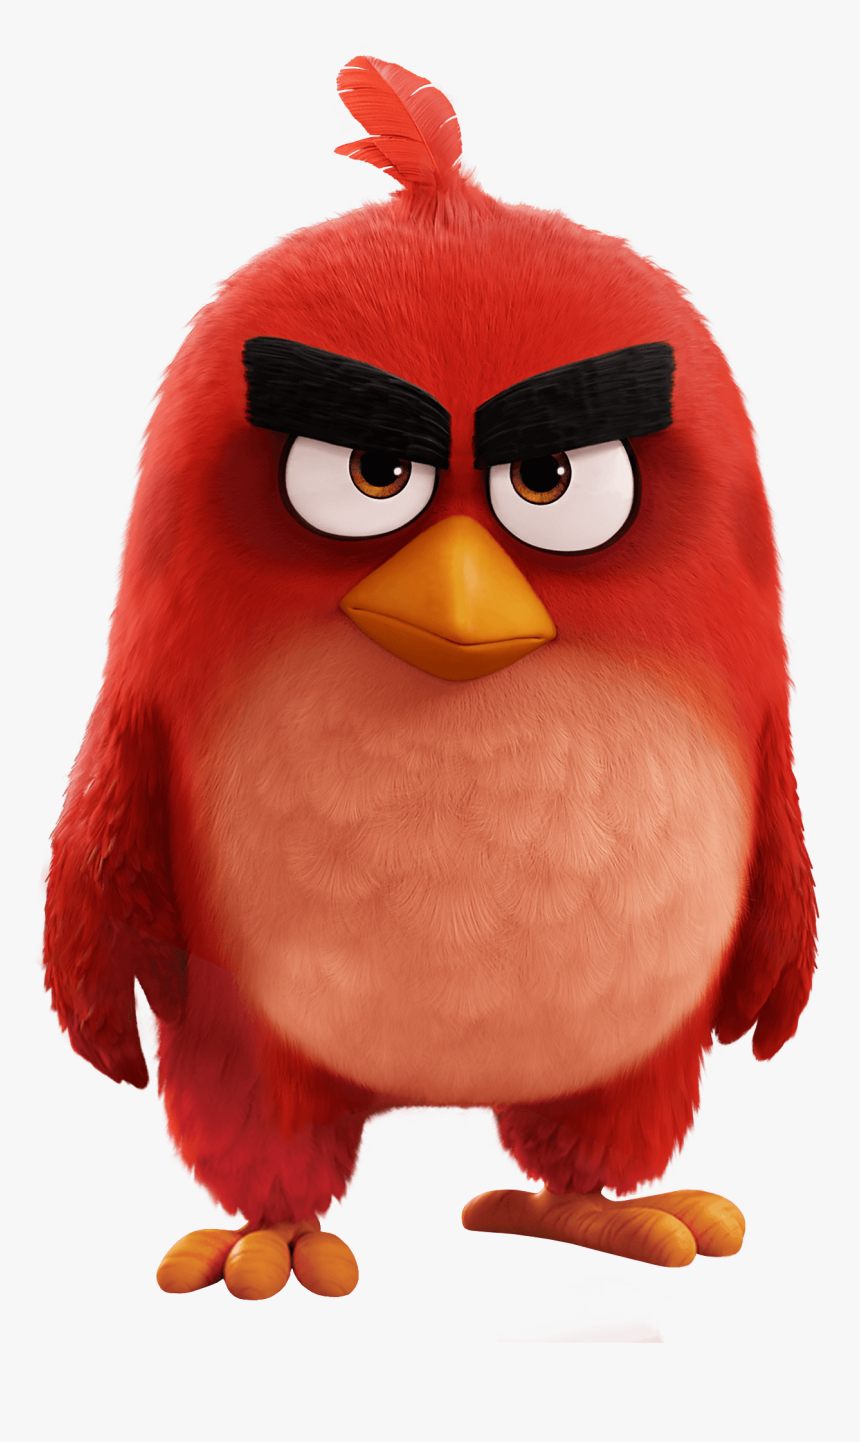 Angry Birds Movie Red Bird - Red From Angry Birds, HD Png Download, Free Download